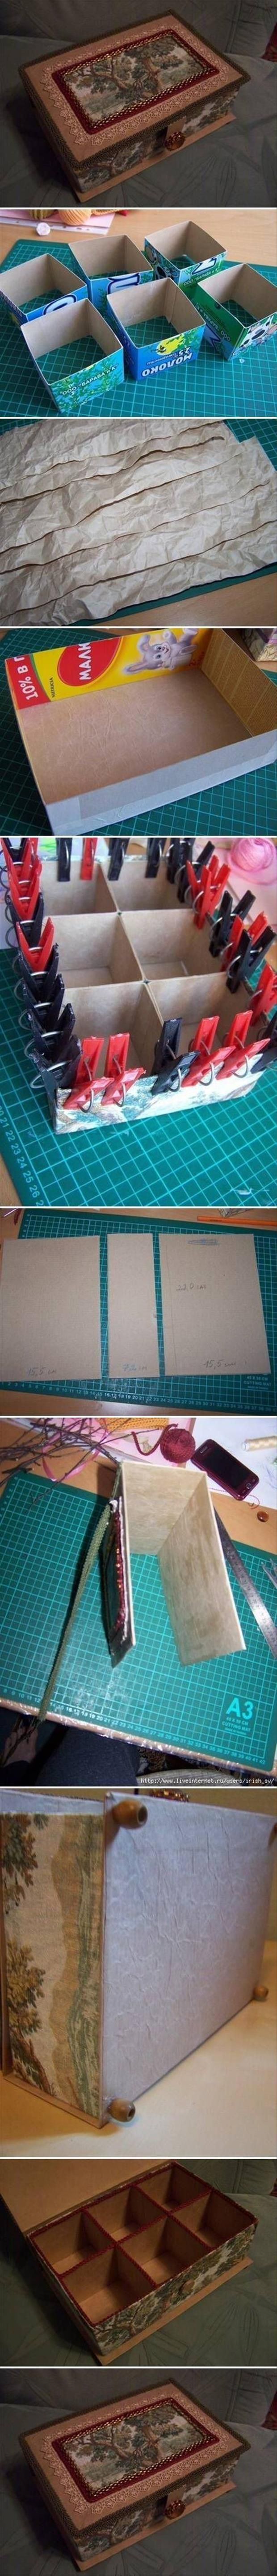 DIY Cardboard Organizer Box Diy Craft Crafts Easy Ideas Do It Yourself Tips Images